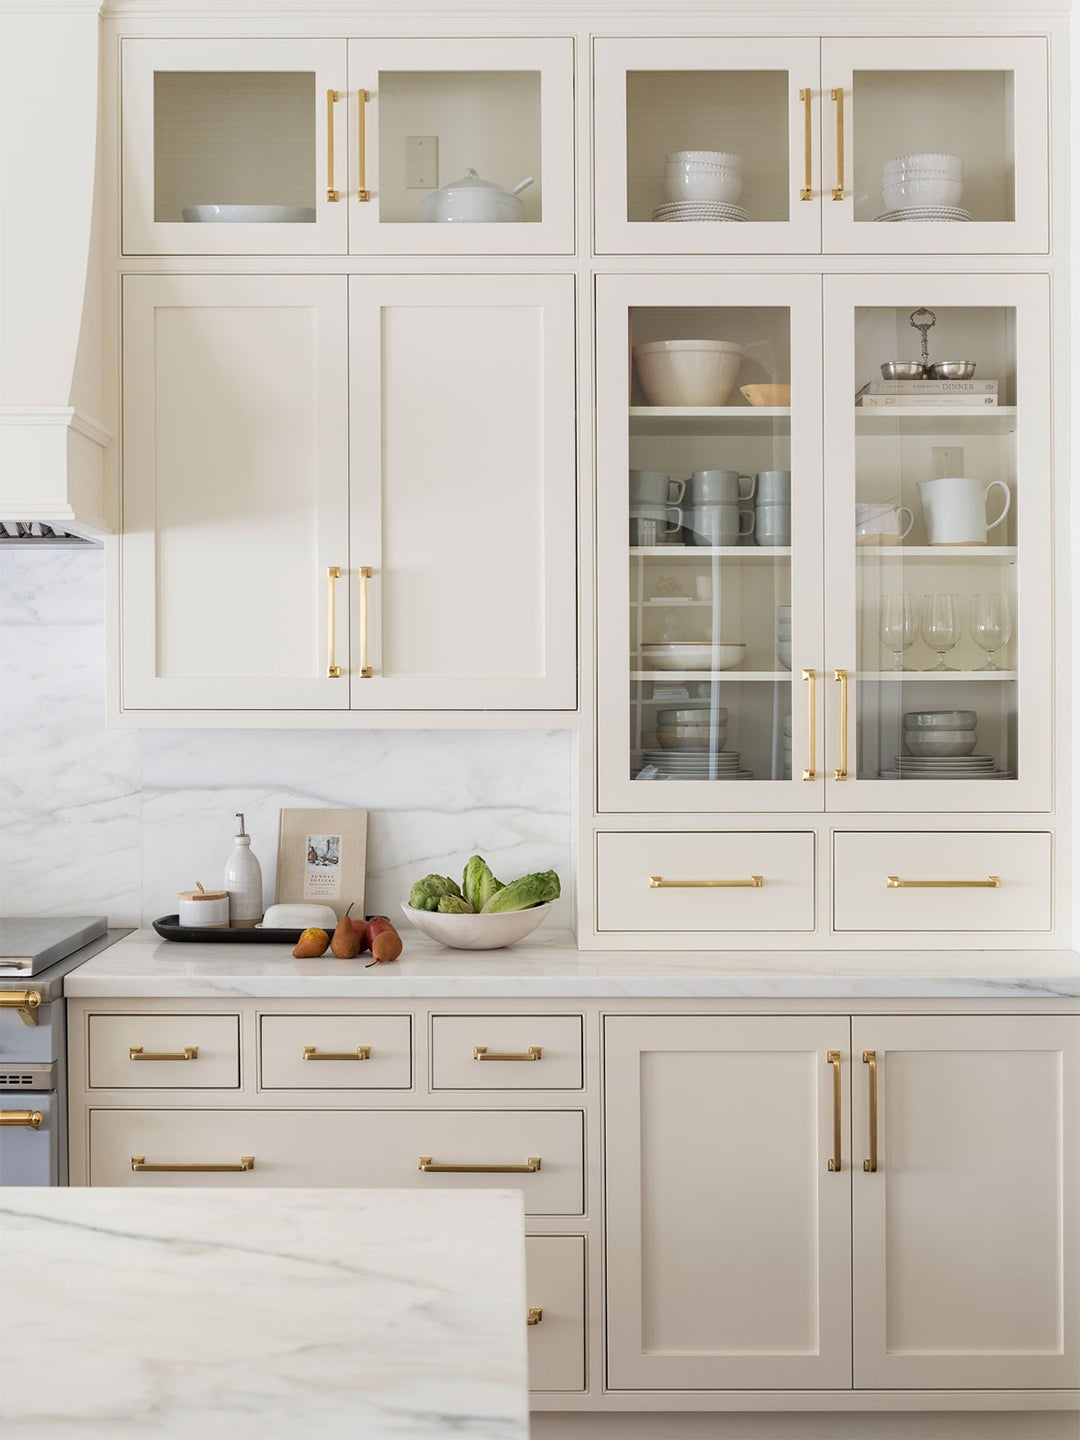 Cream Colored Cabinets Is The Dose Of